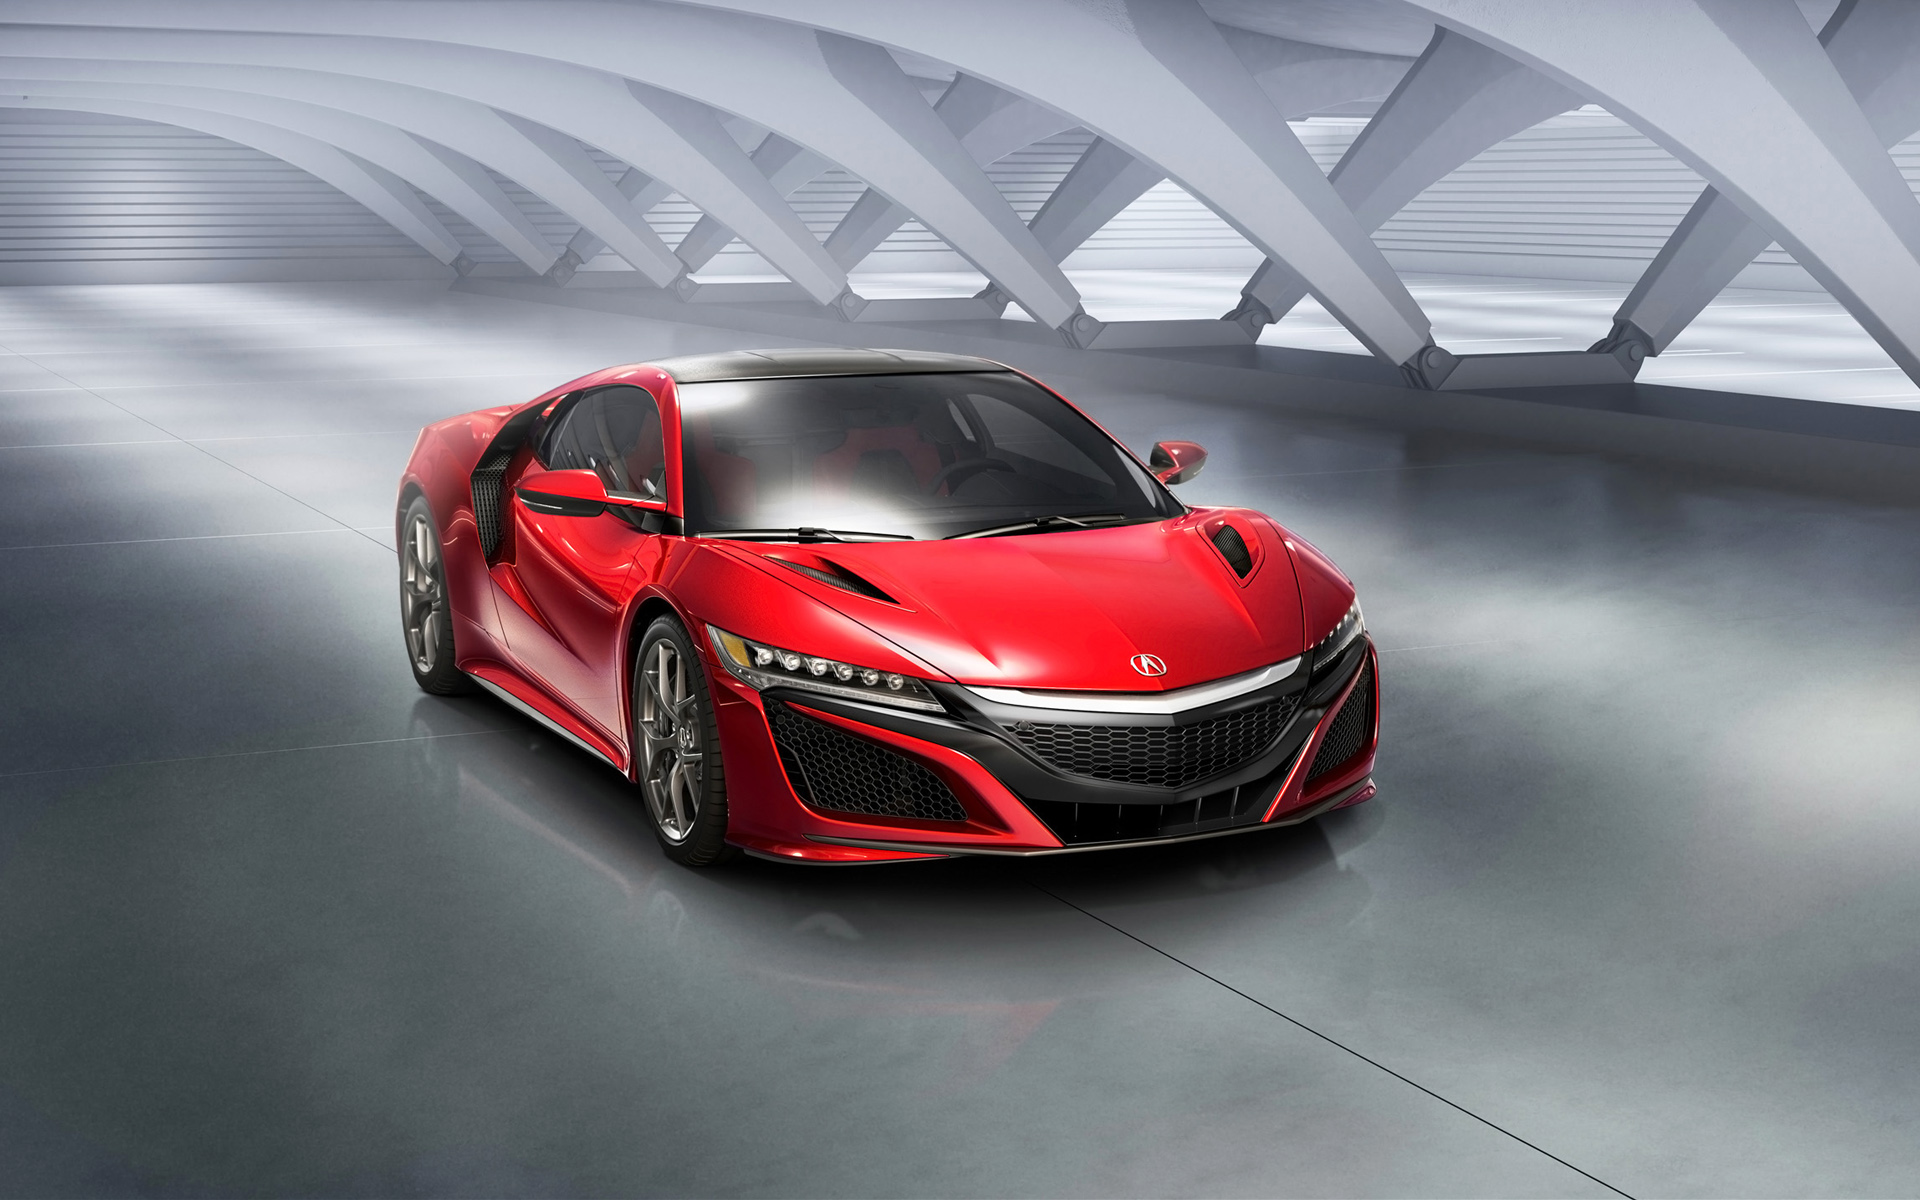 2016 acura nsx wallpaper hd 46243